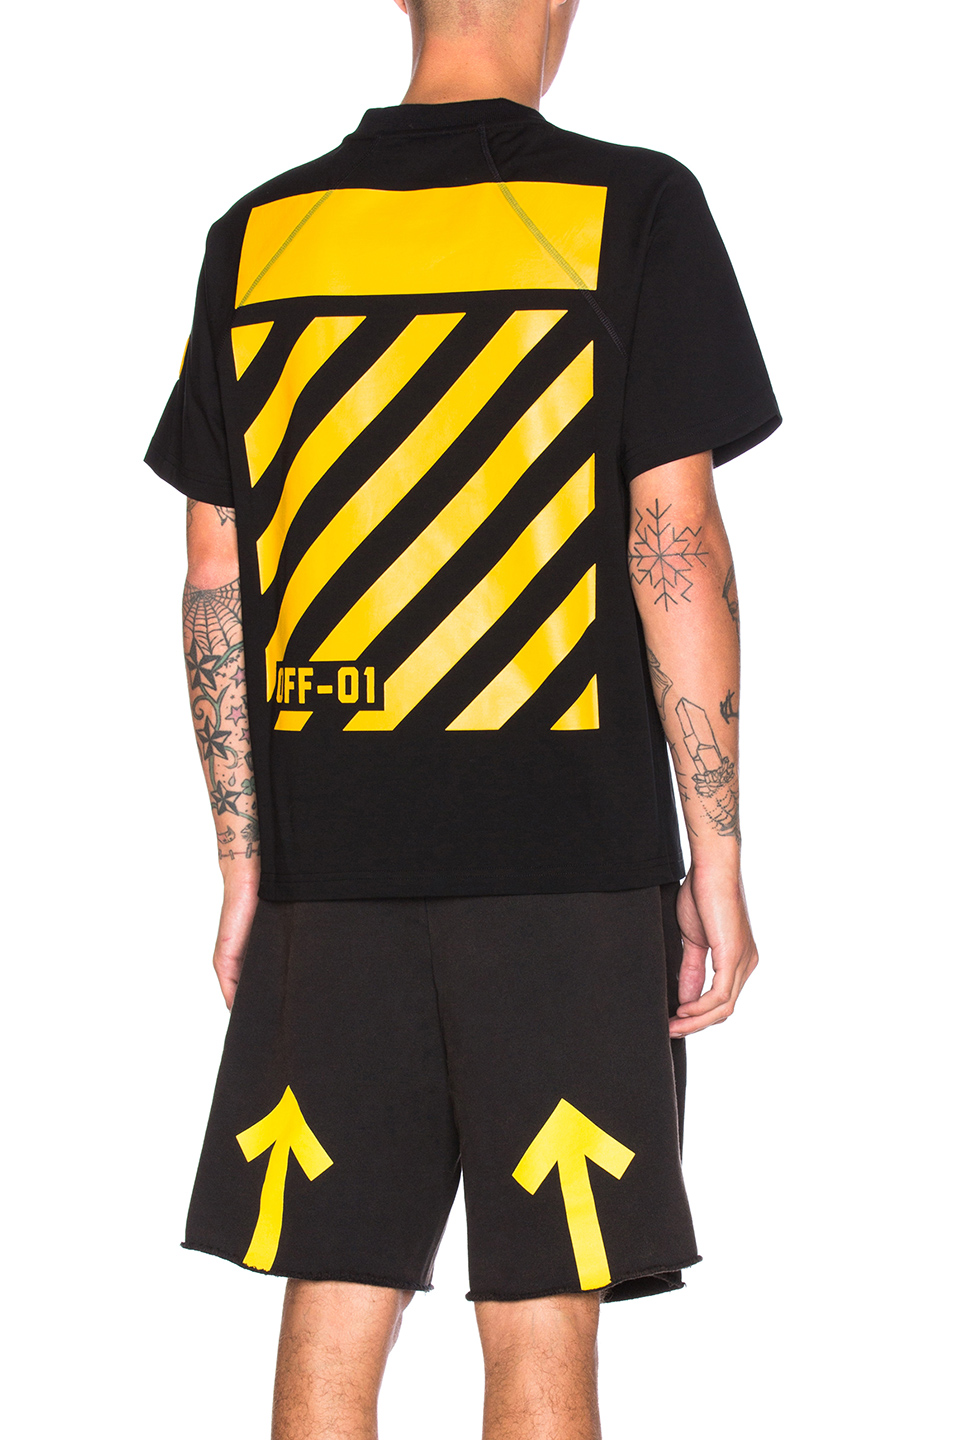 Photo of Moncler x Off White Maglia Tee in Black - shop Moncler x Off White menswear